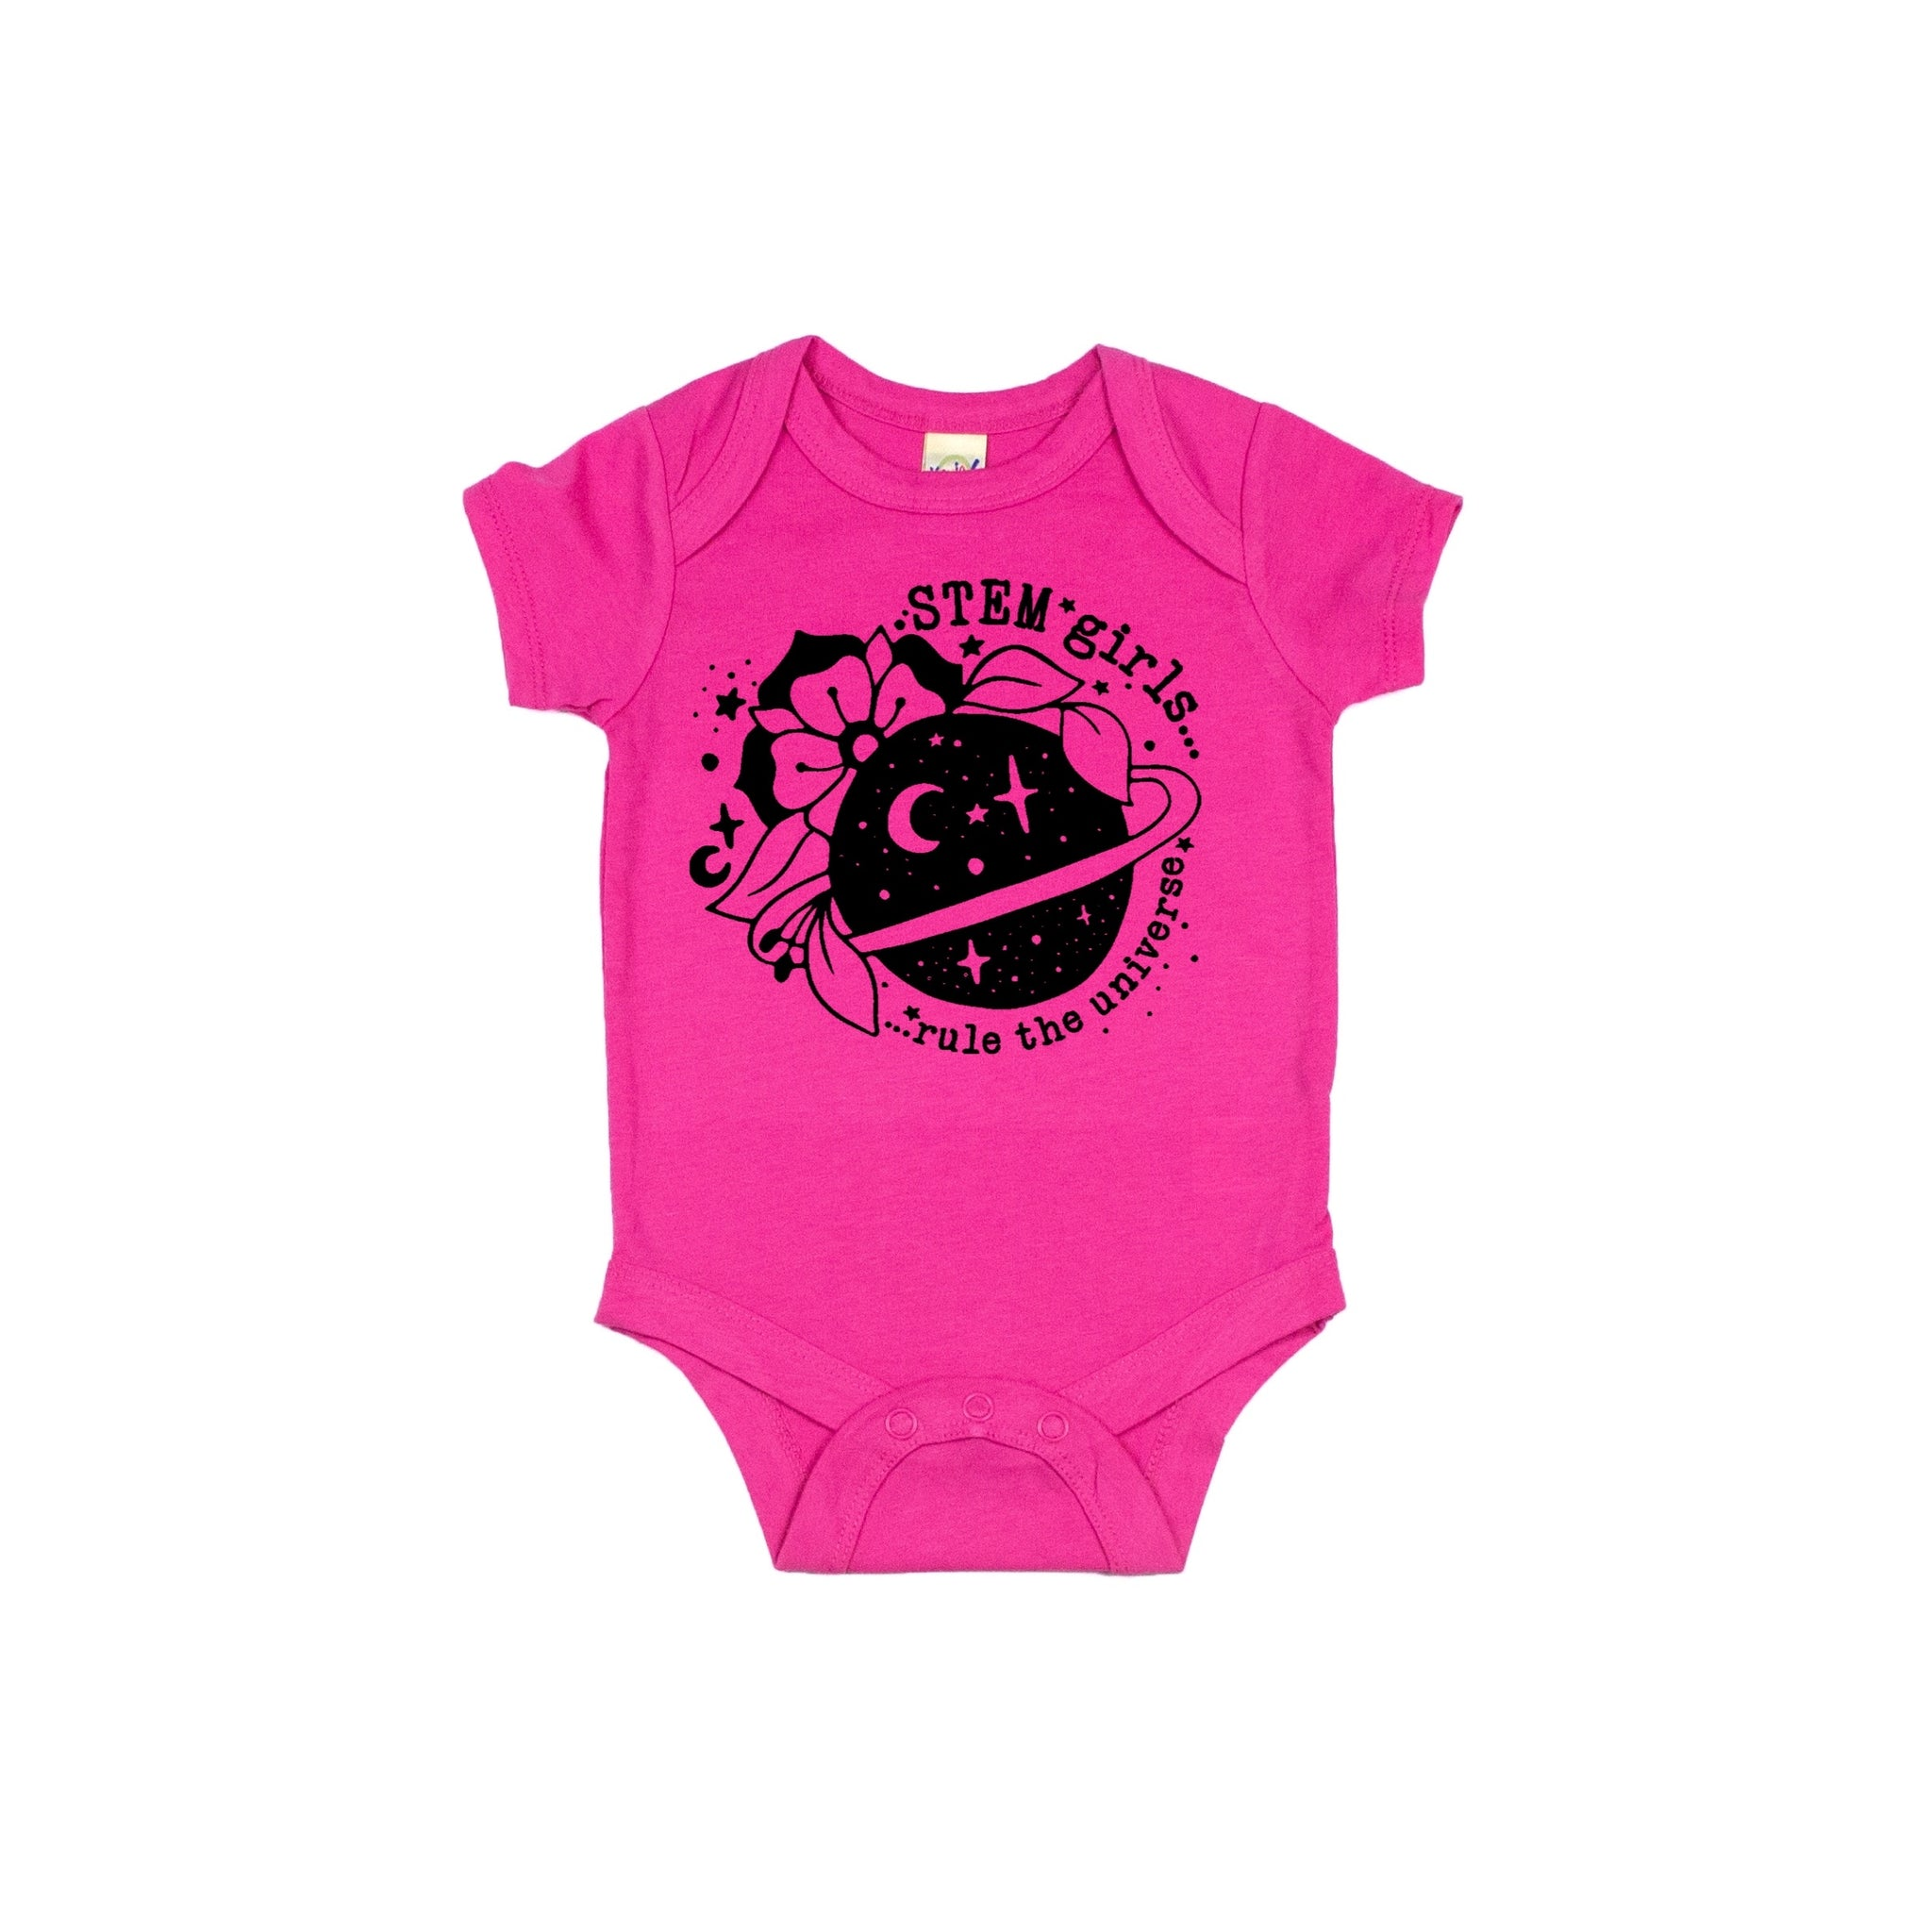 STEM Girls Rule the Universe Infant Onesie